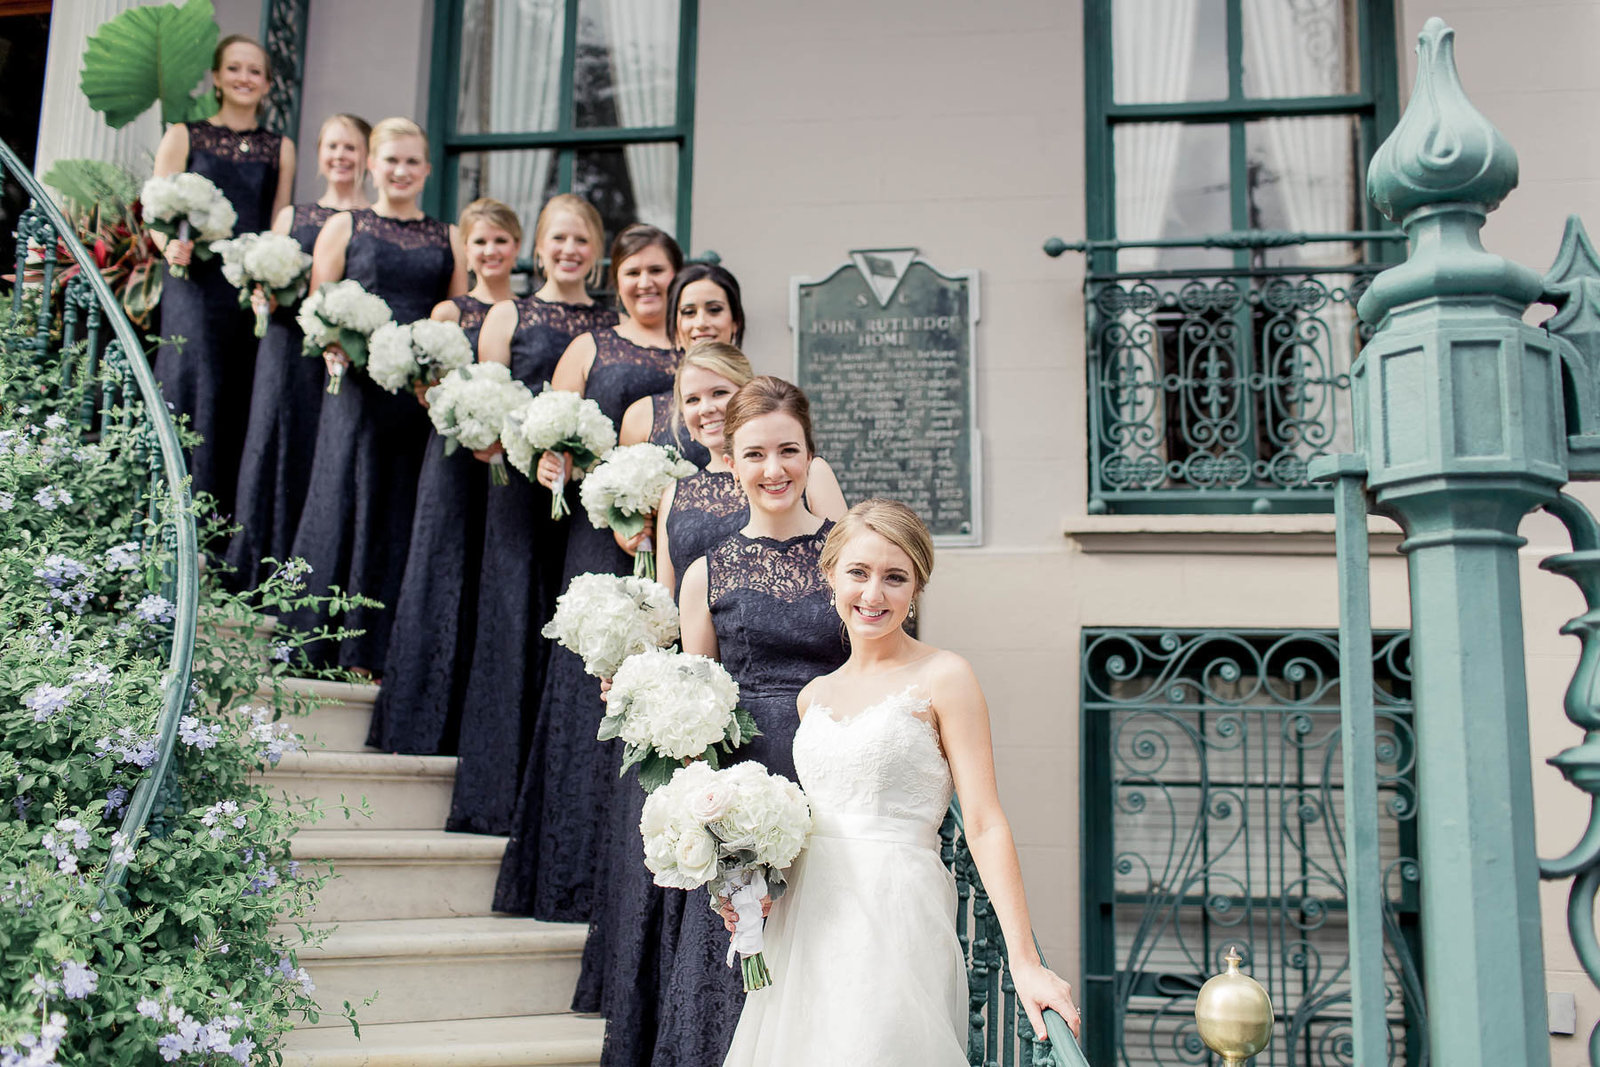 Bride poses with bridesmaids on ornate staircase, John Rutledge House Inn, Charleston, South Carolina